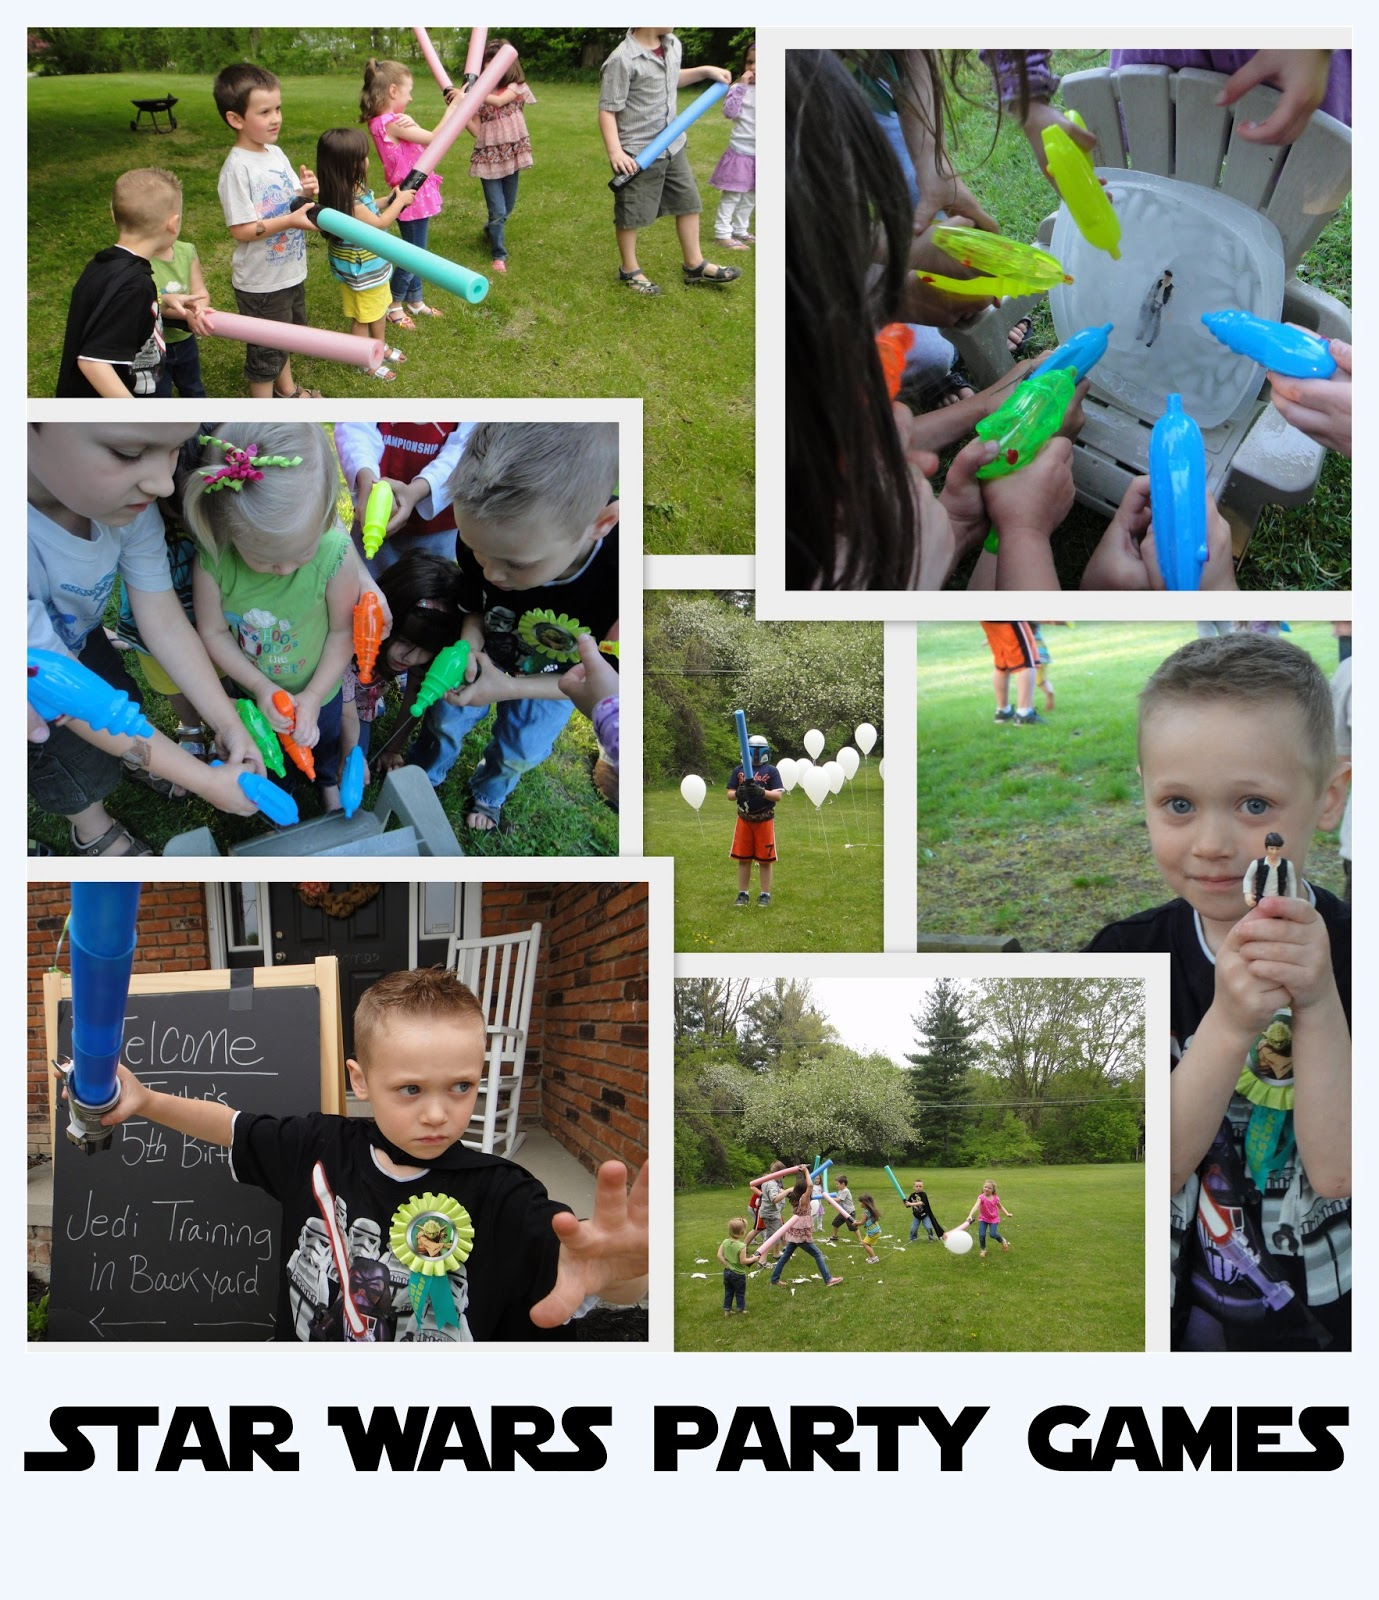 Star Wars Themed Party Games